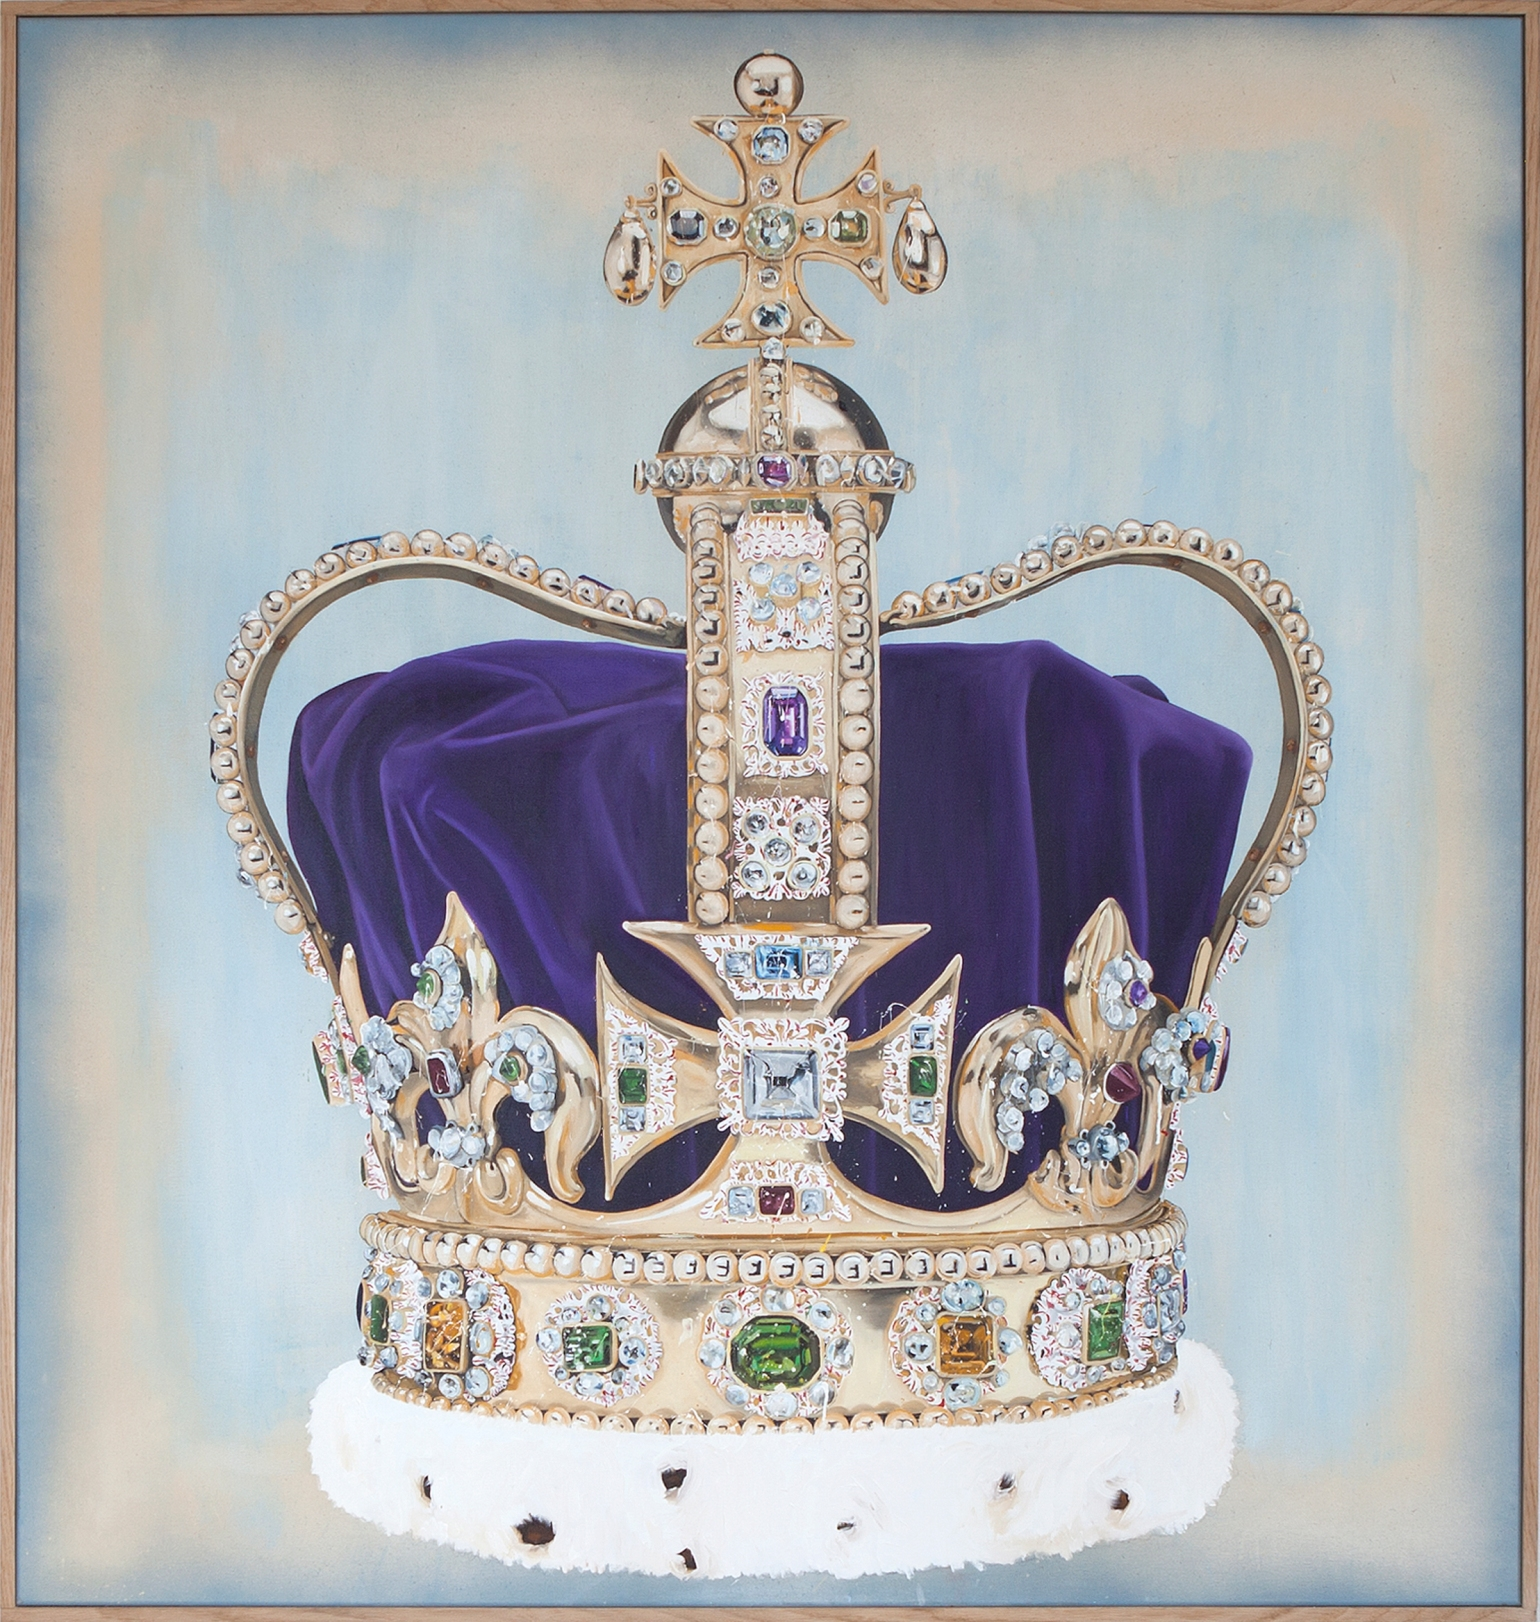 Lars Bjerre_2The Robbery (St. Edwards Crown), Oil, pigment & spray on canvas. 160x150 cm. Oak frame (163x153x4 cm). 2015